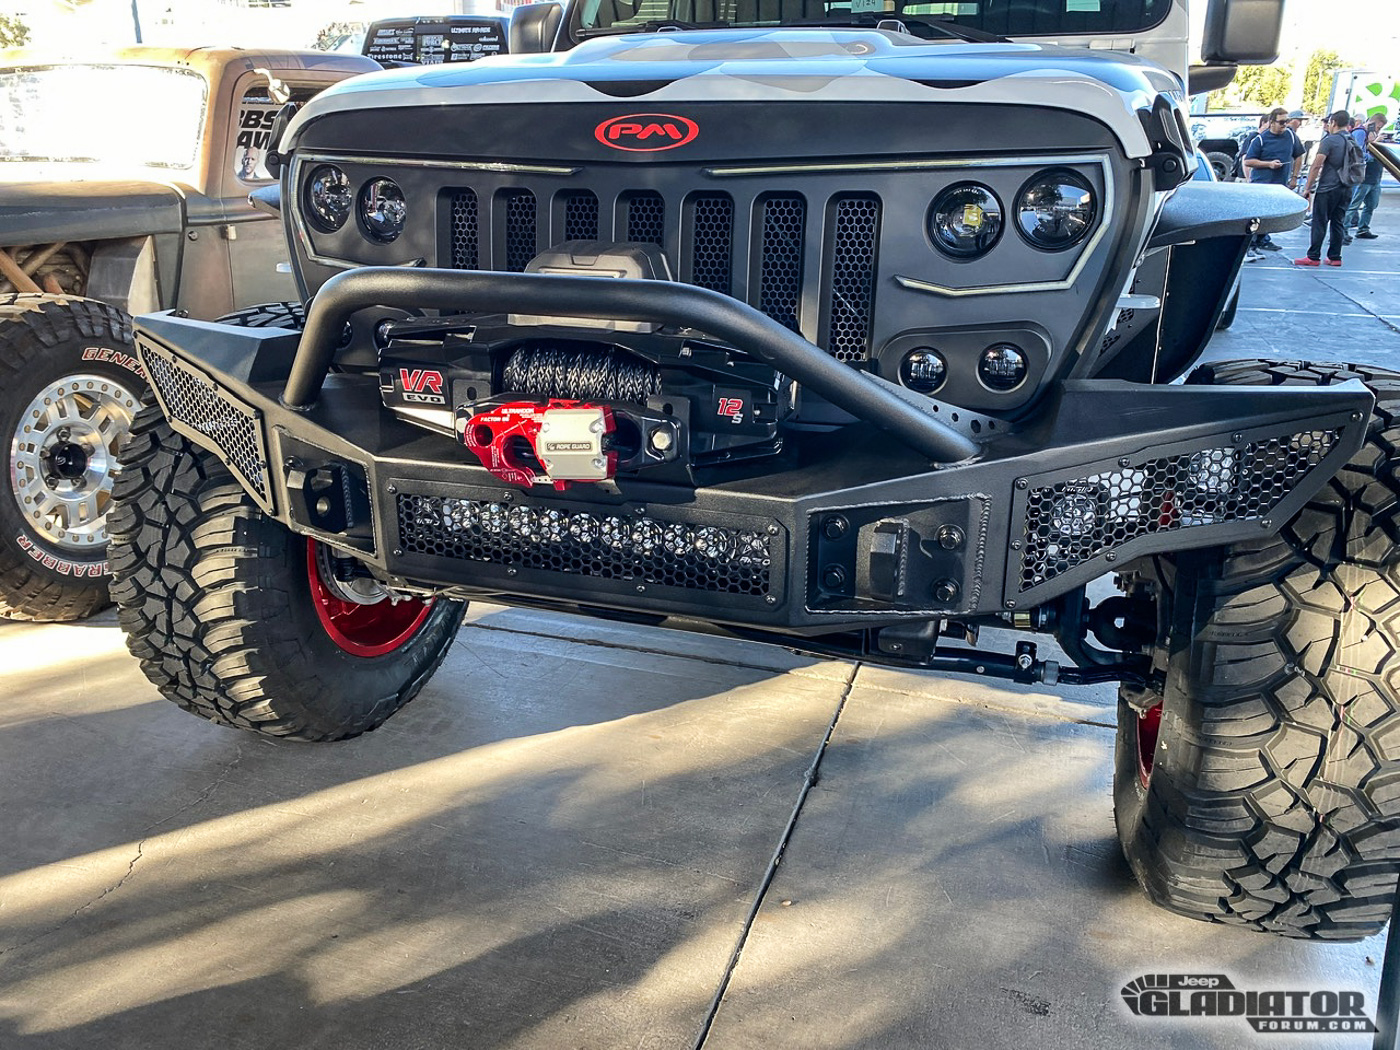 Pro-Motorsports-Supercharged-JT-Jeep-Gladiator-SEMA-Build--4.jpg